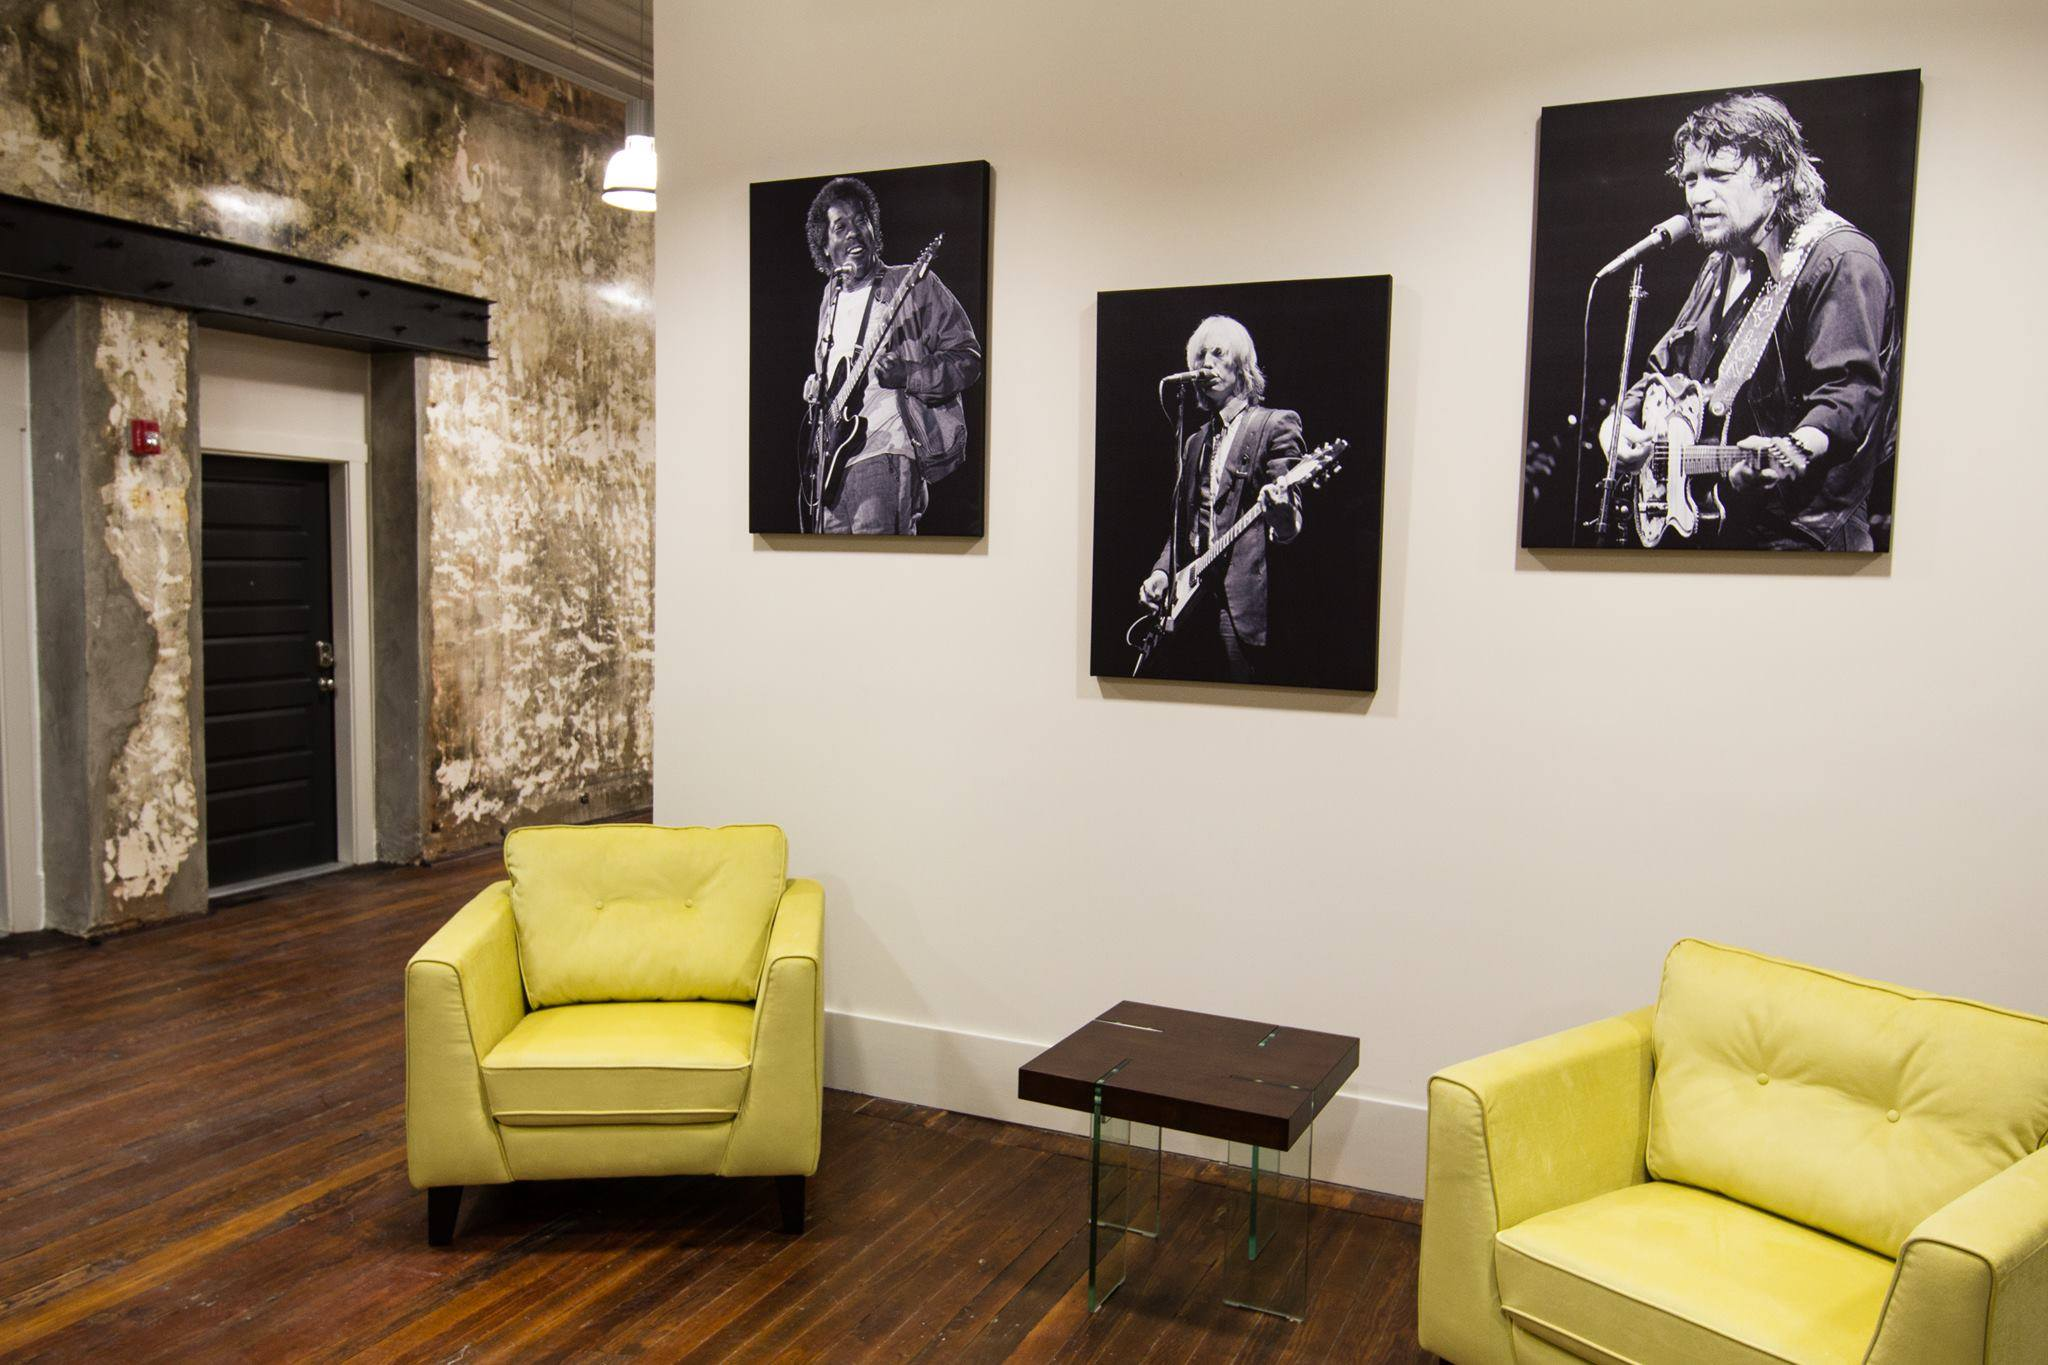 Kirk West's photography in The Lamar lobby